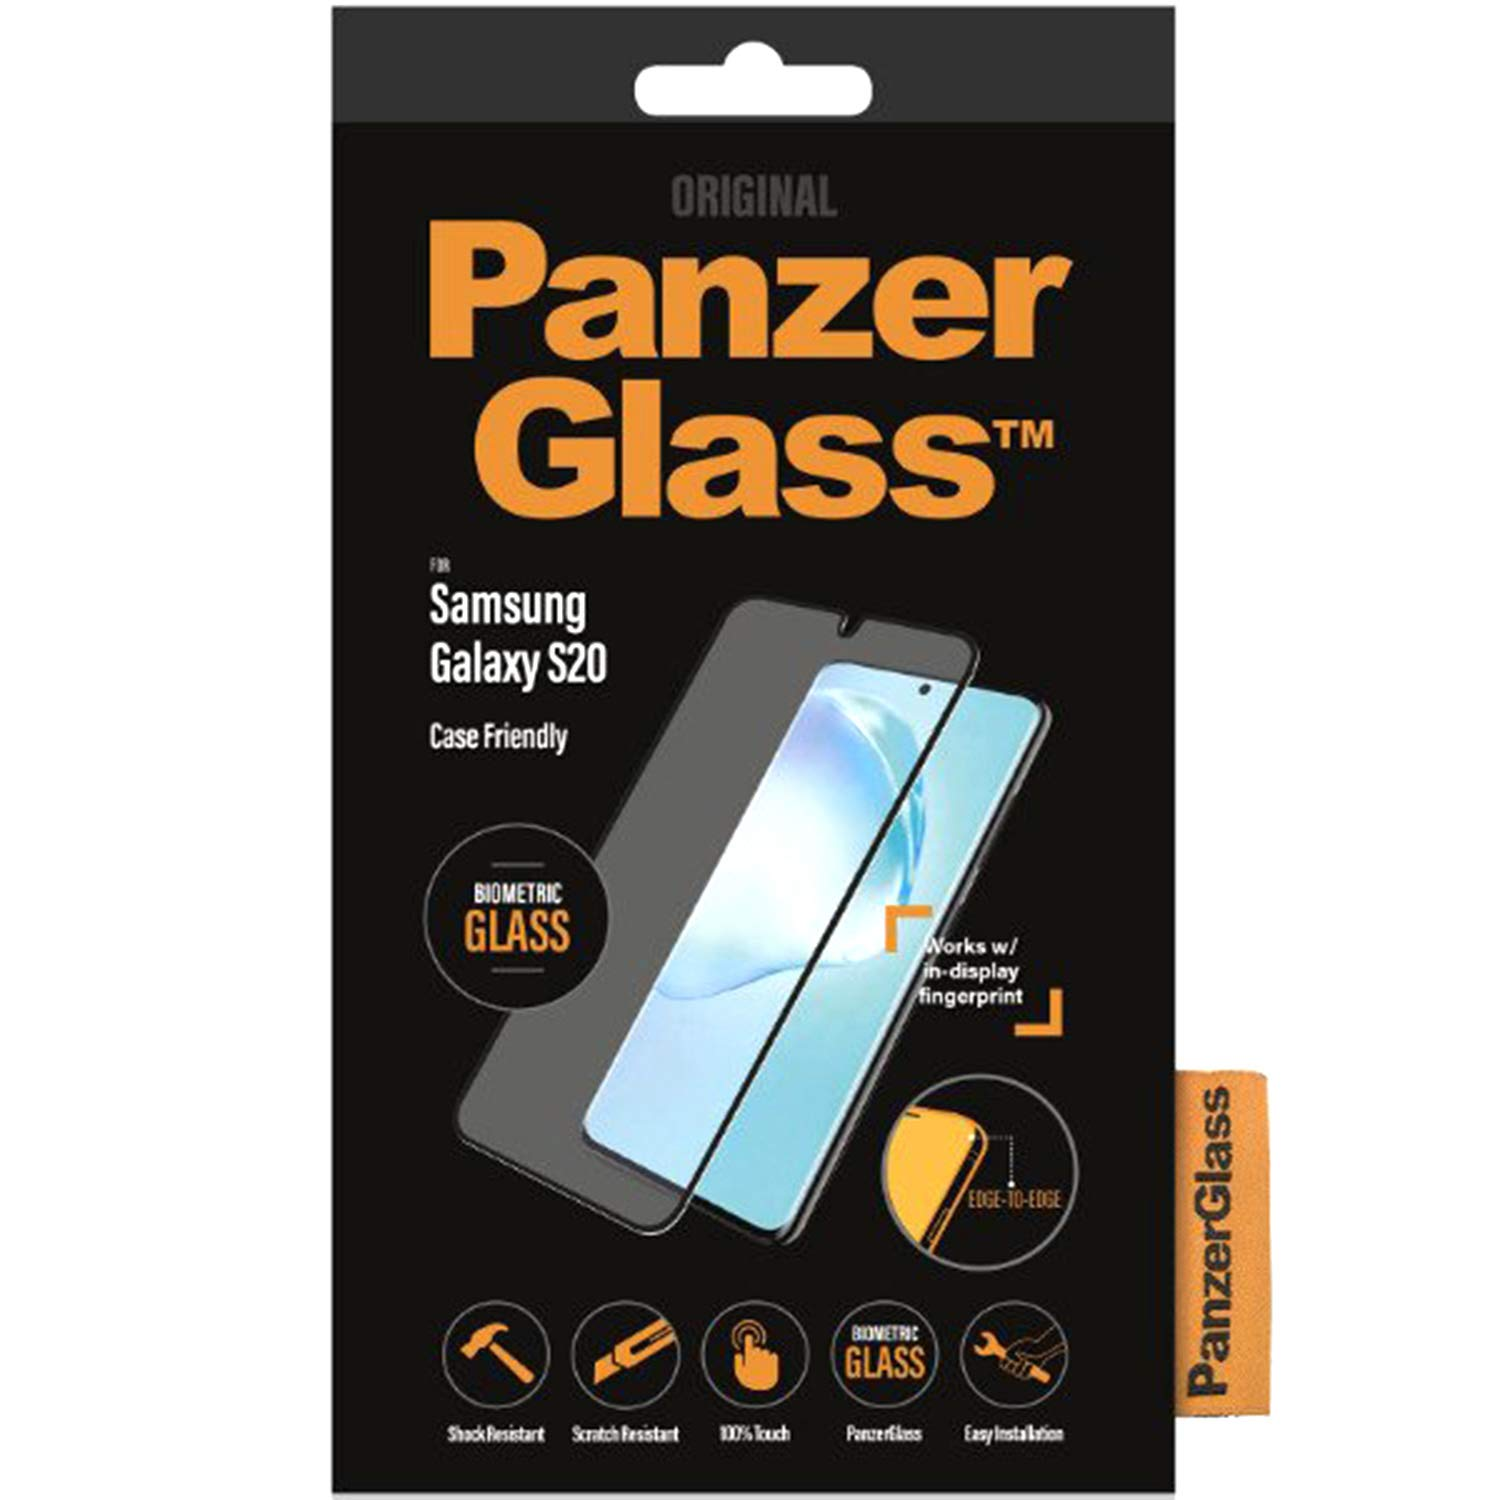 PanzerGlass 7222 Screen Protector for Mobile Phone/Smartphone Samsung 1 Piece(s) 7222, Screen Protector, Mobile Phone/Smartphone, Samsung, Galaxy S20, Scratch Resistant,